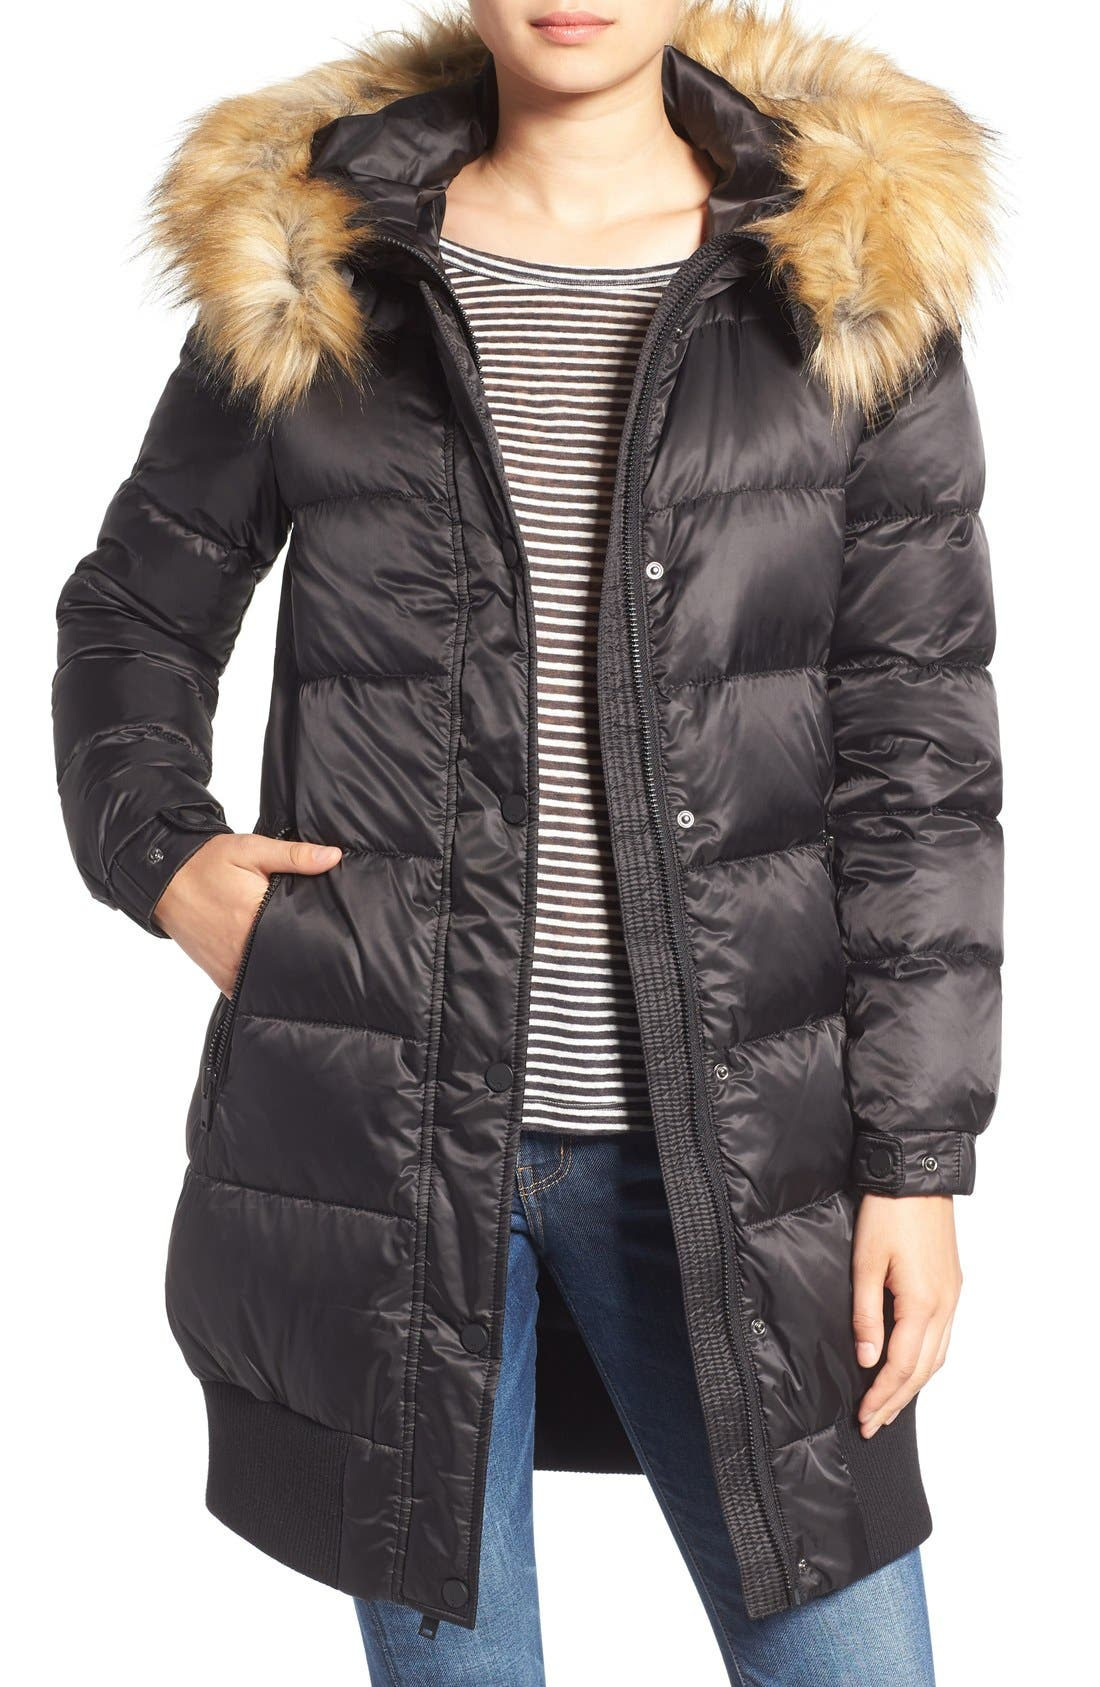 Alternate Image 1 Selected - 7 For All Mankind Quilted Coat with Removable Faux Fur Trim Hood